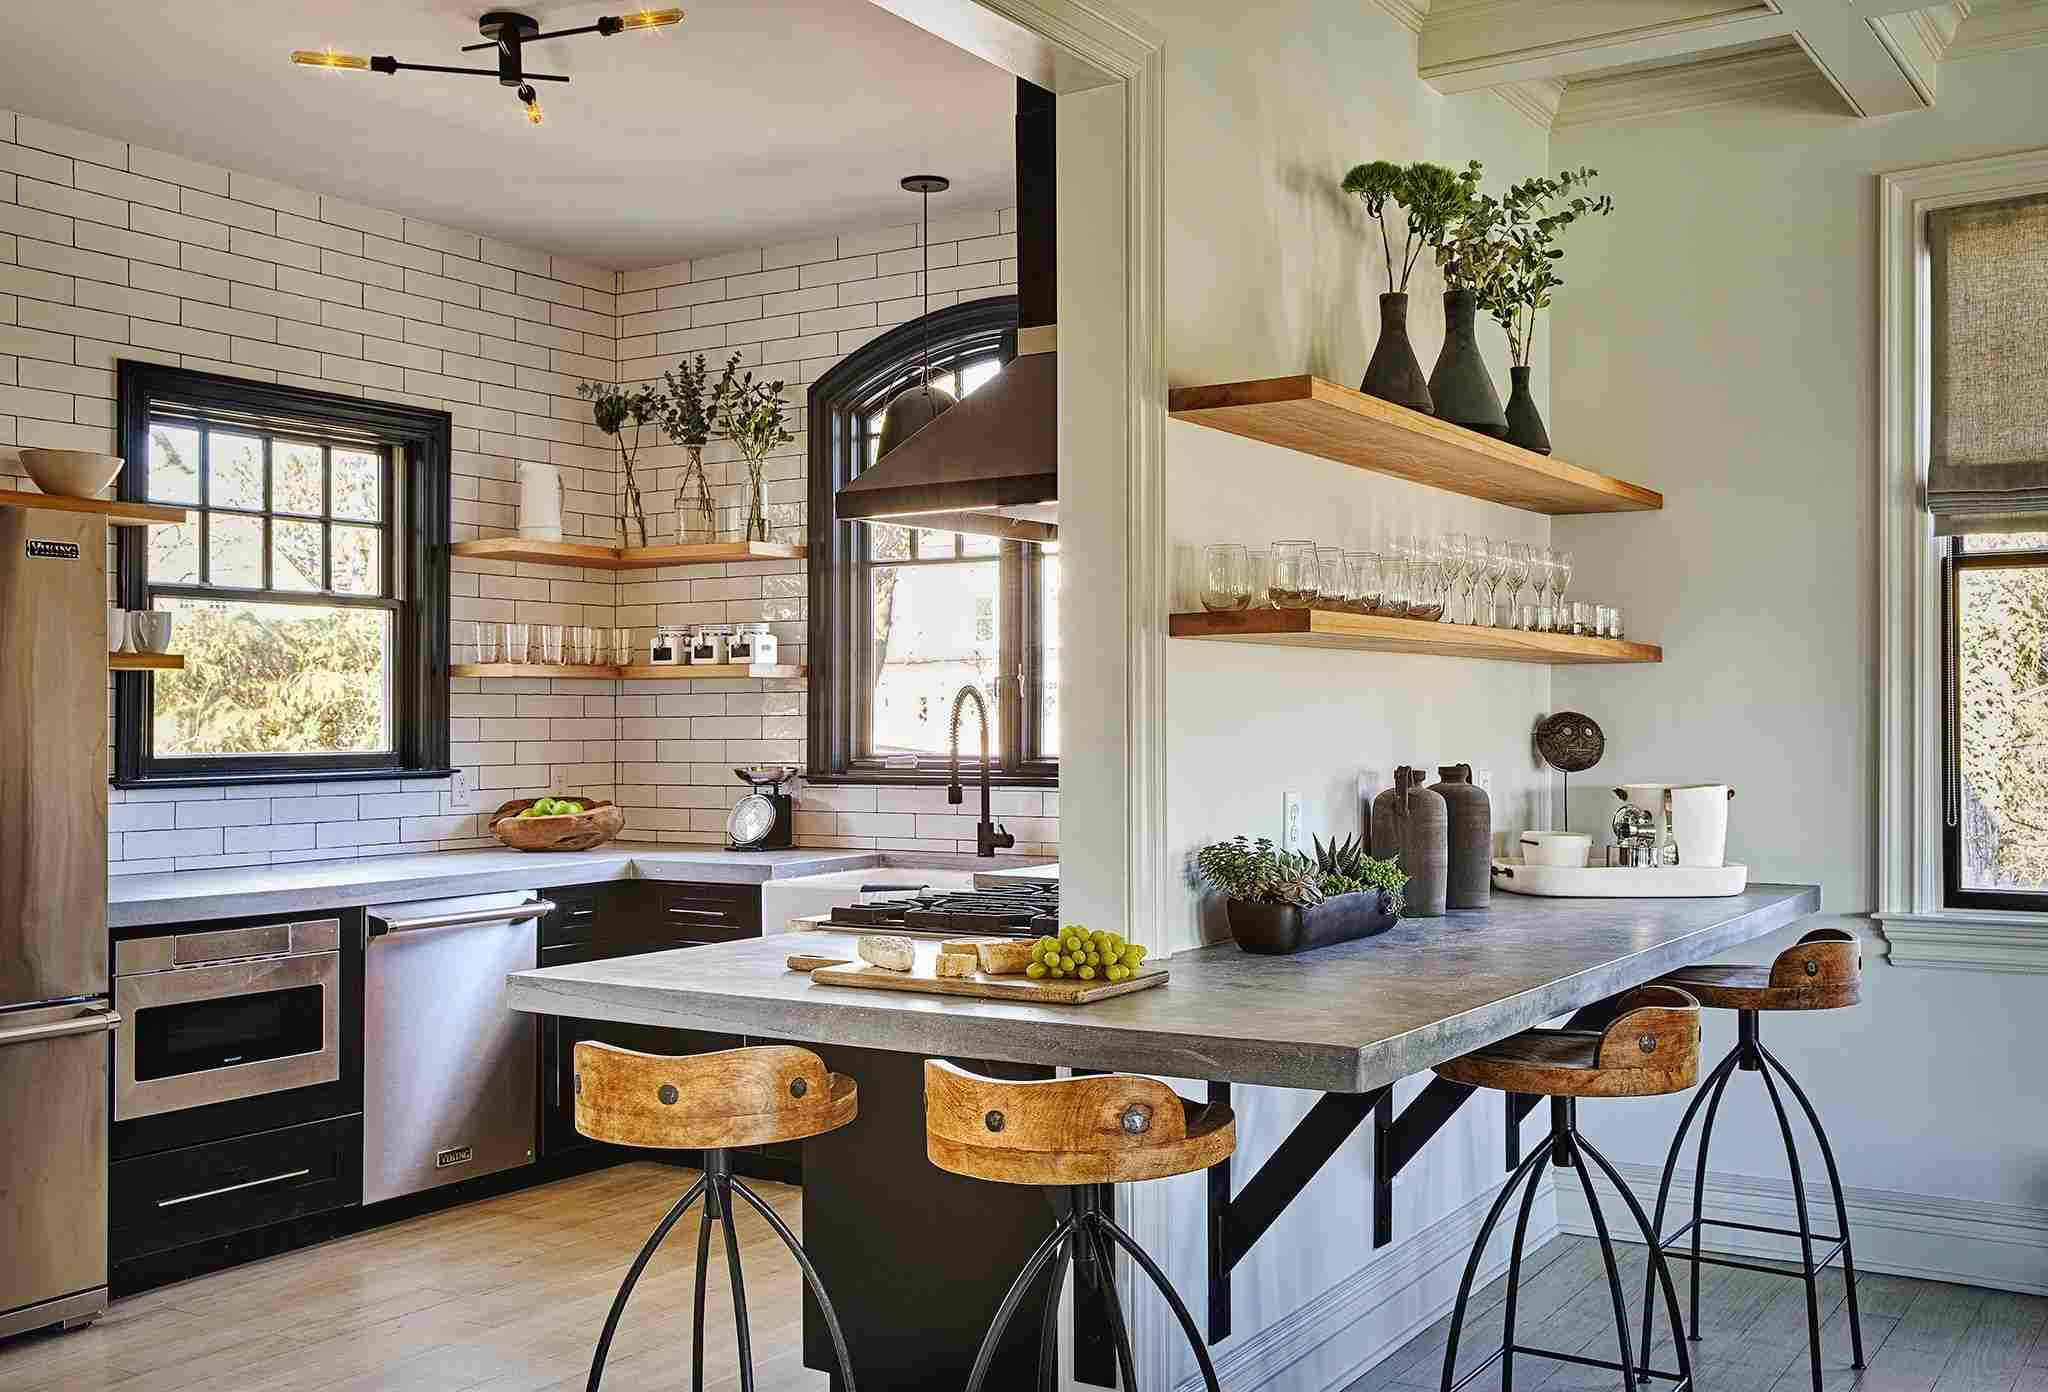 15 Striking Kitchens With Concrete Countertops